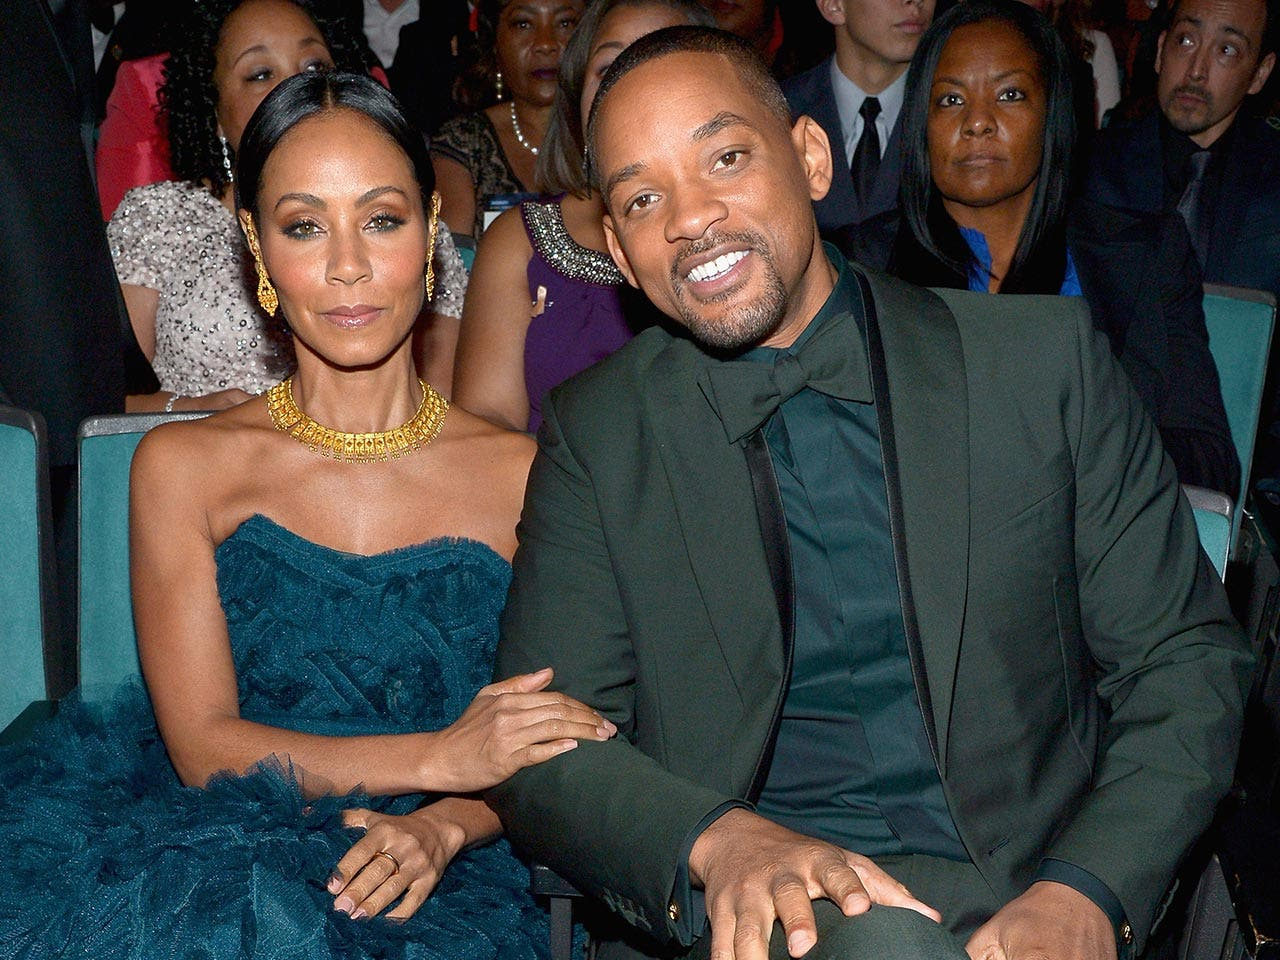 Image result for Will and Jada Pinkett Smith $280 million